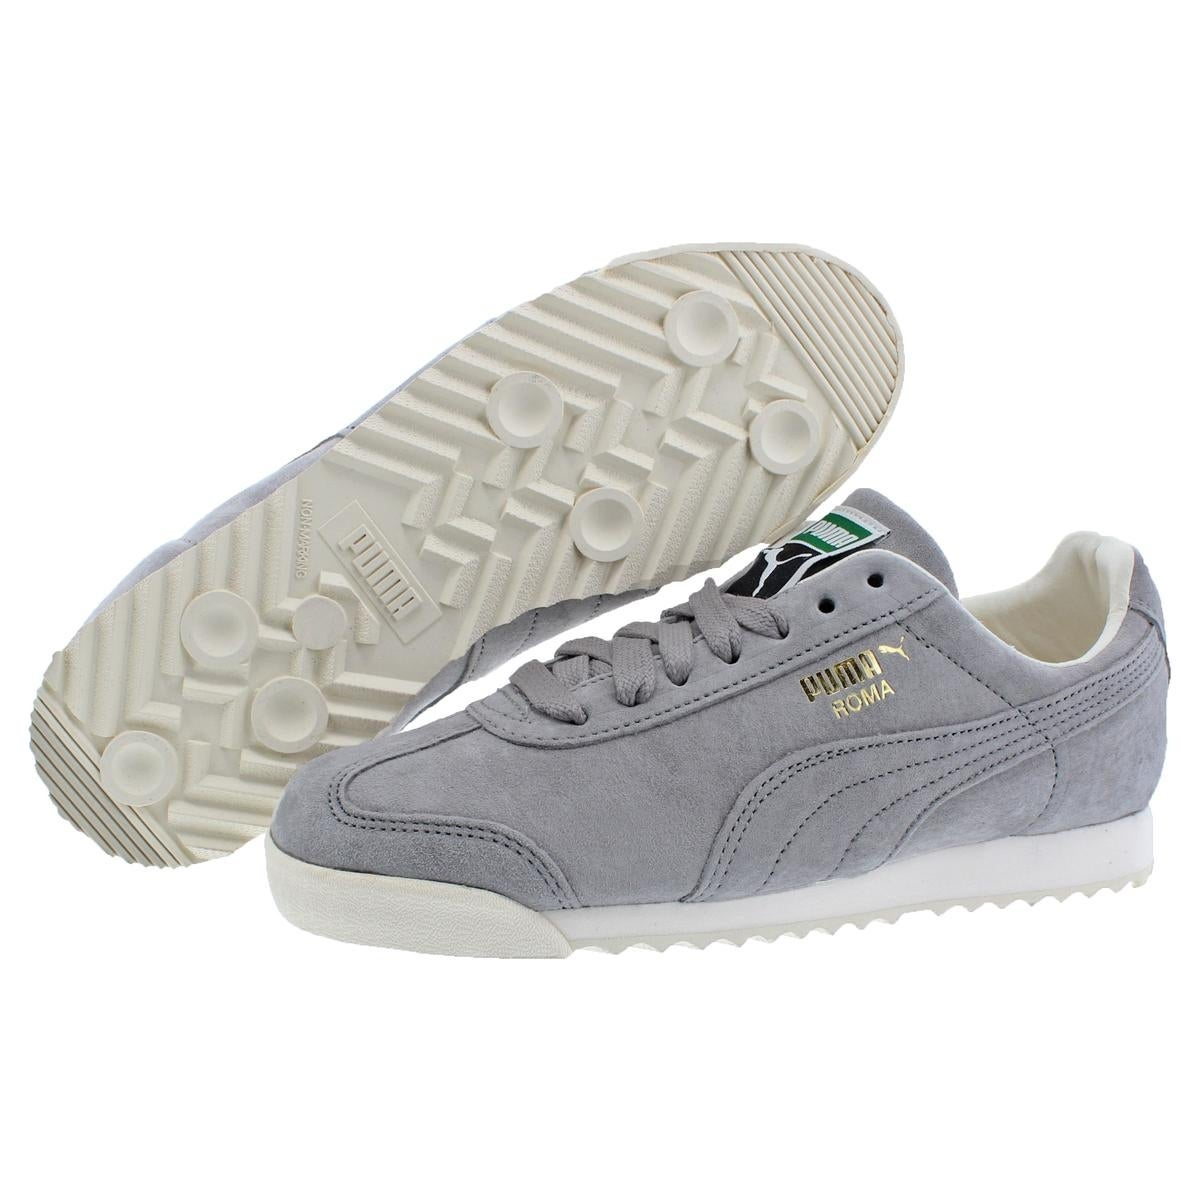 best website c8696 41c41 Puma Mens Roma Distressed Fashion Sneakers Trainer Non Marking